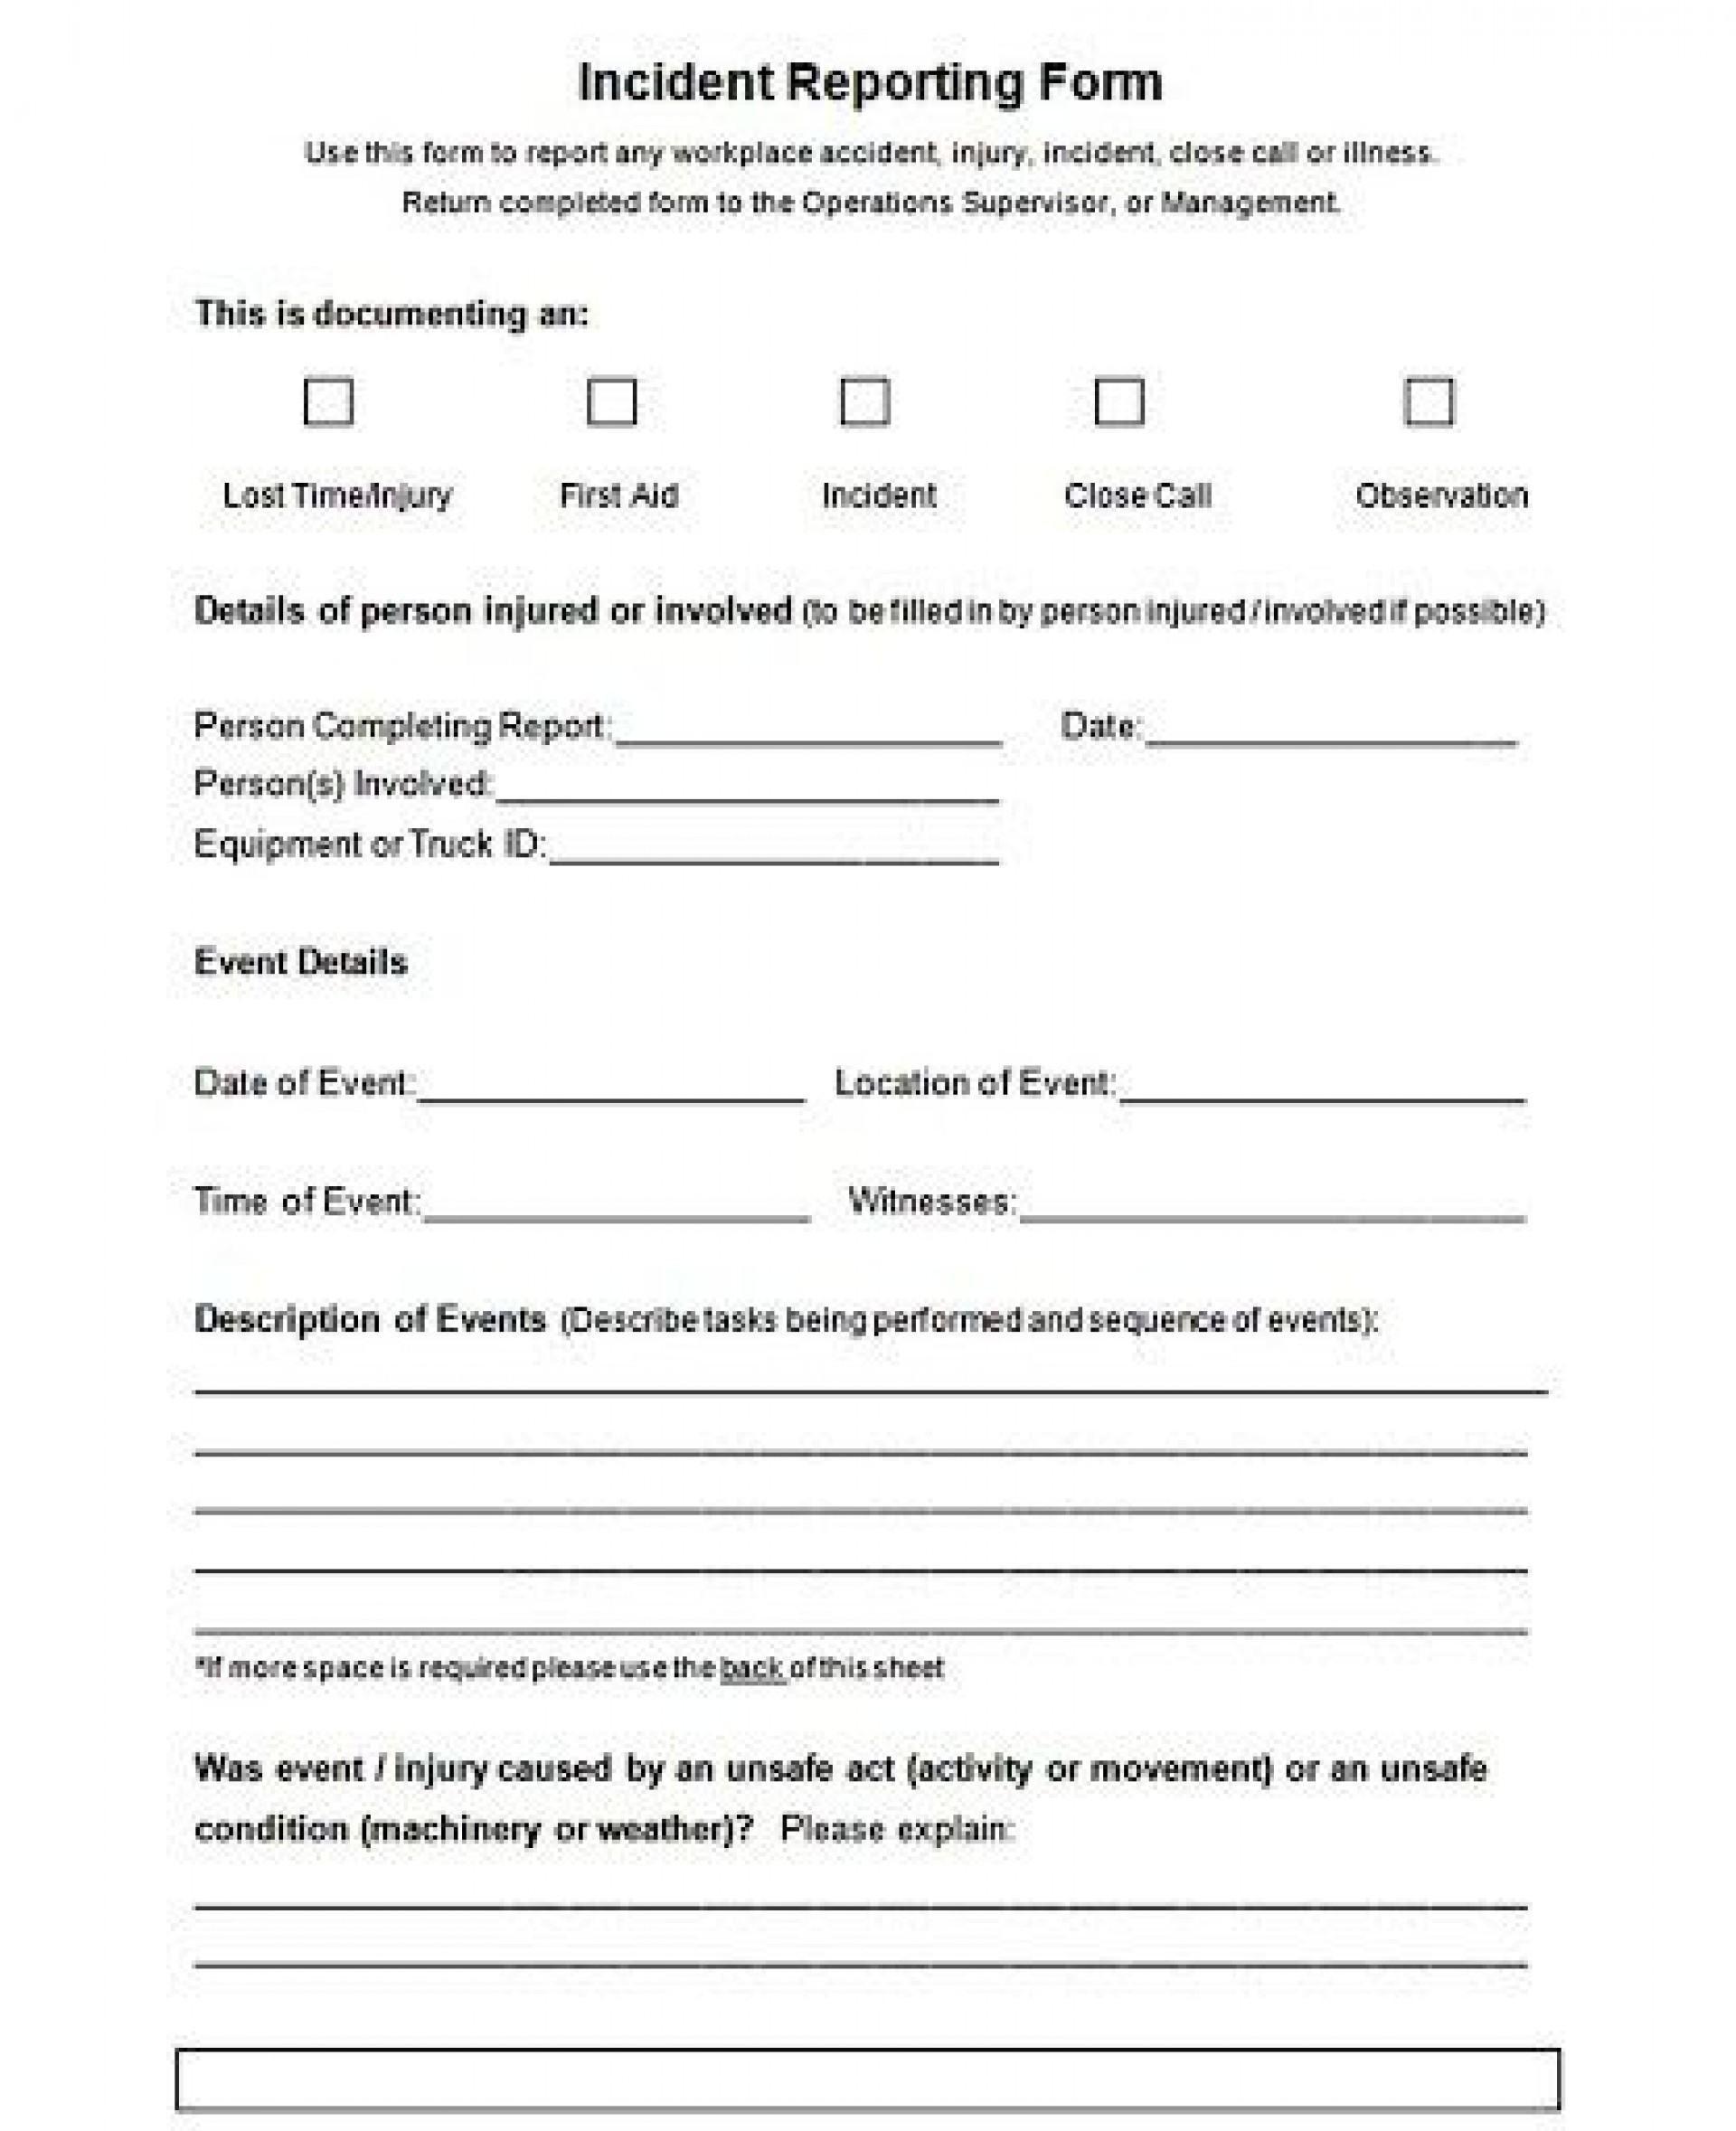 003 Unforgettable Accident Report Form Template Picture  Templates Free Ireland Hse1920